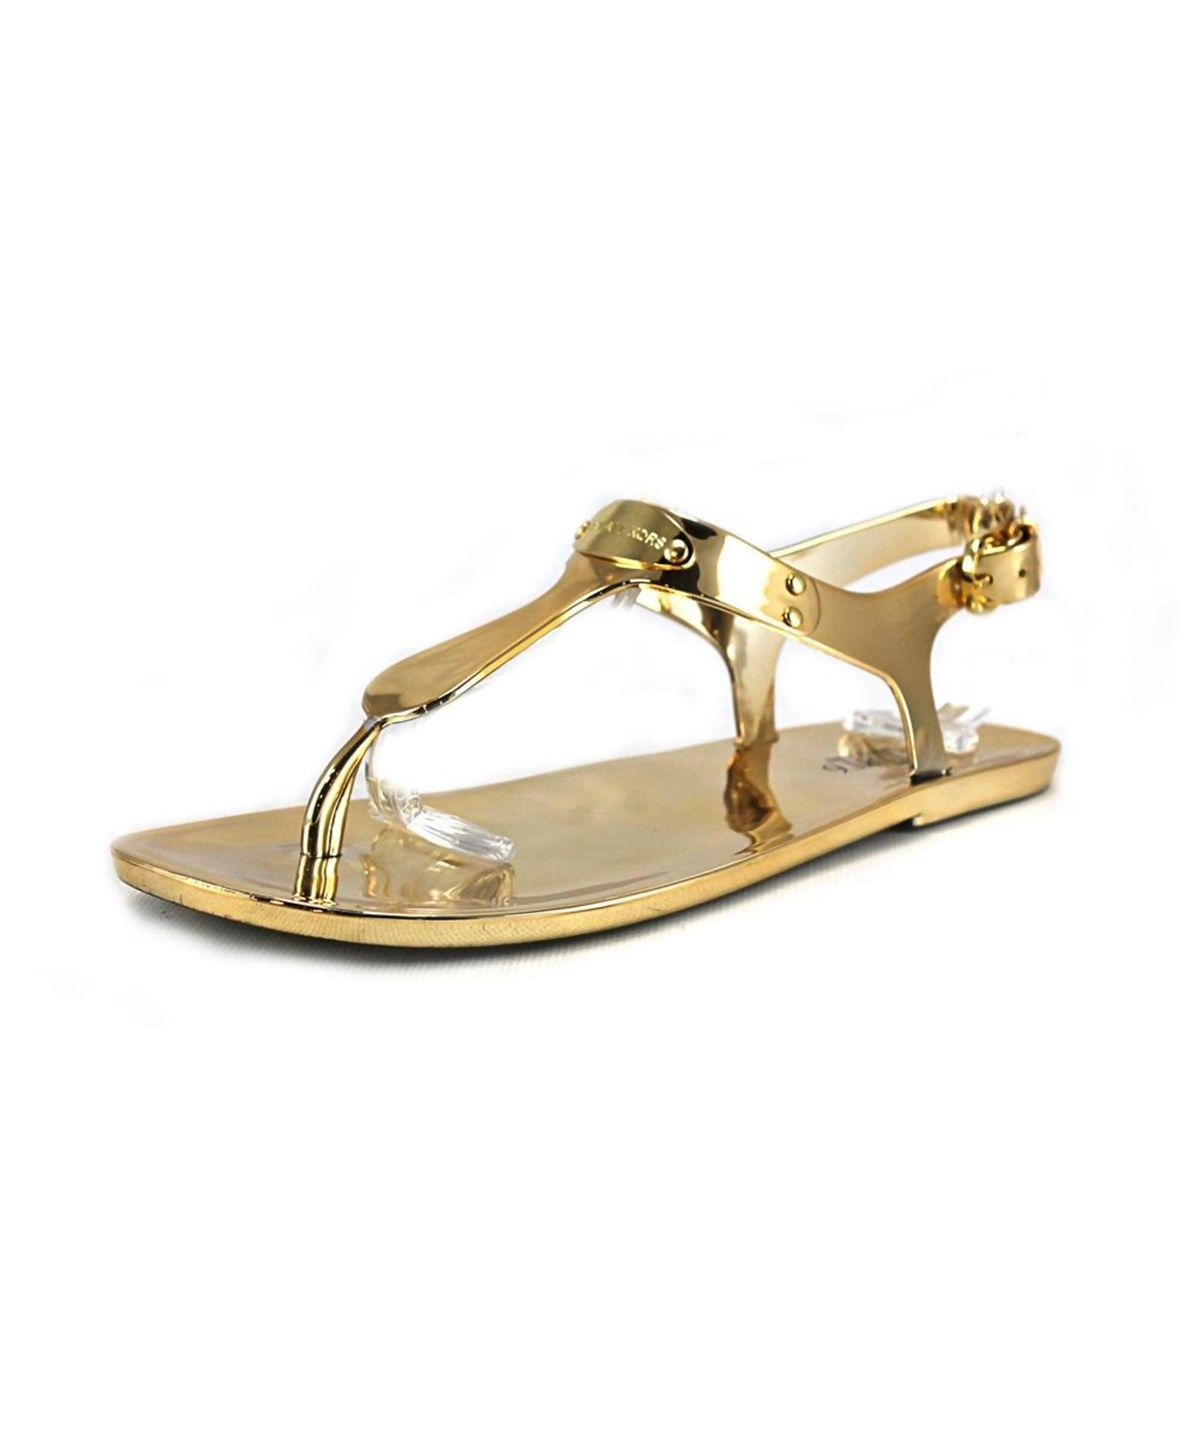 c5971afbbebed7 MICHAEL MICHAEL KORS Michael Michael Kors Mk Plate Jelly Women Open Toe  Synthetic Gold Thong Sandal .  michaelmichaelkors  shoes  sandals